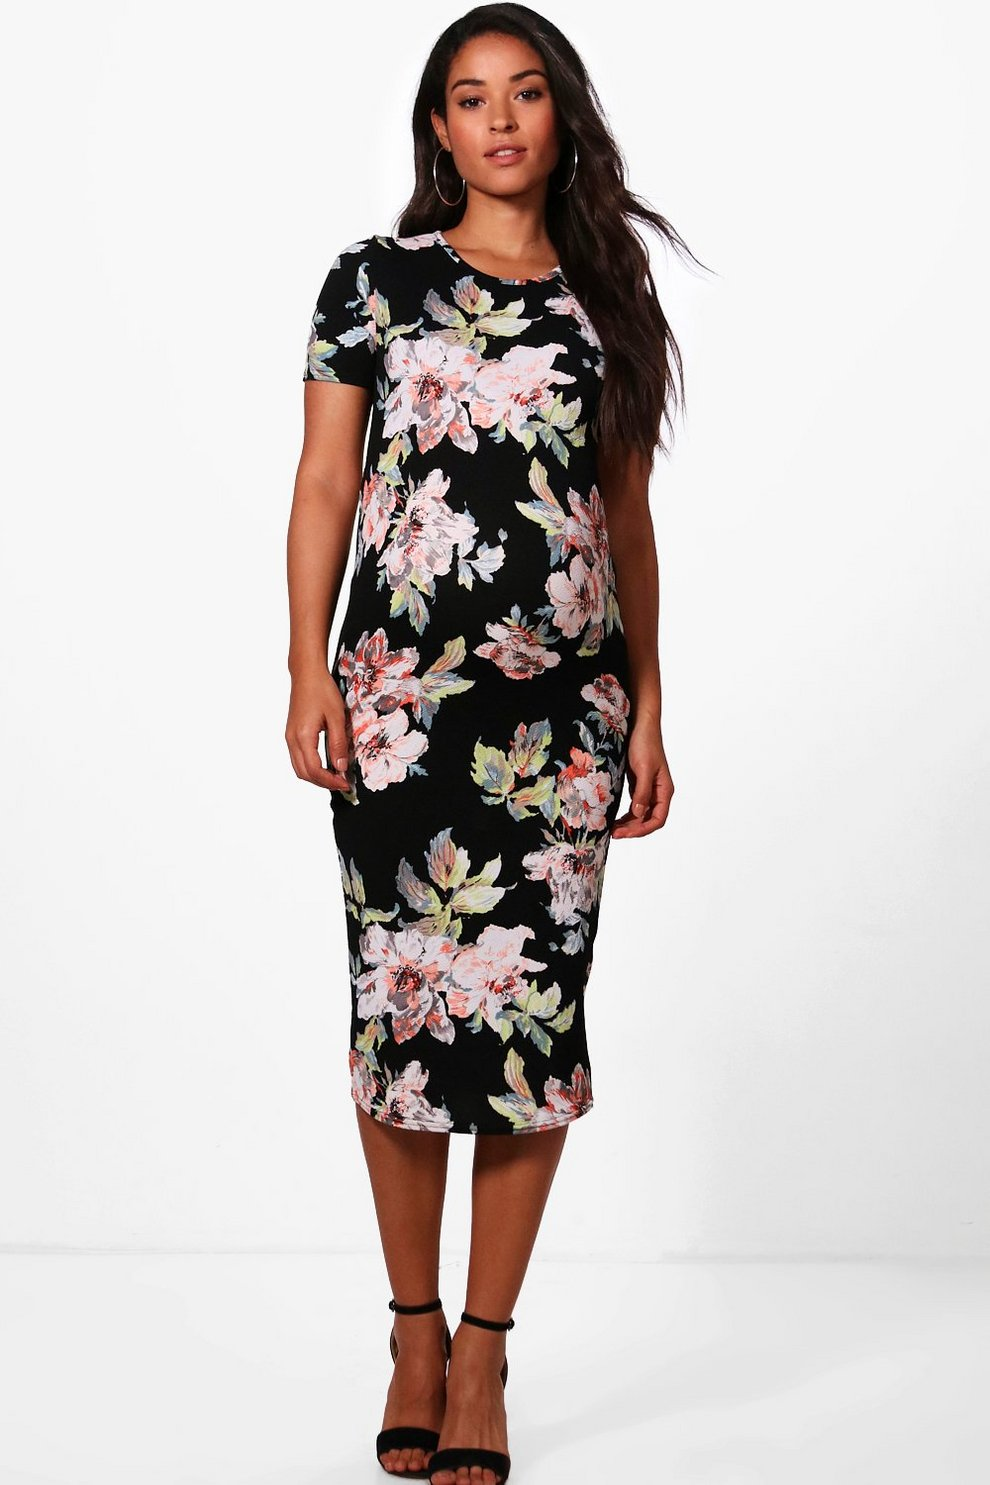 Boohoo Maternity Floral Printed Short Sleeve Dress Clearance For Sale Sale Factory Outlet In China For Sale CMHgz